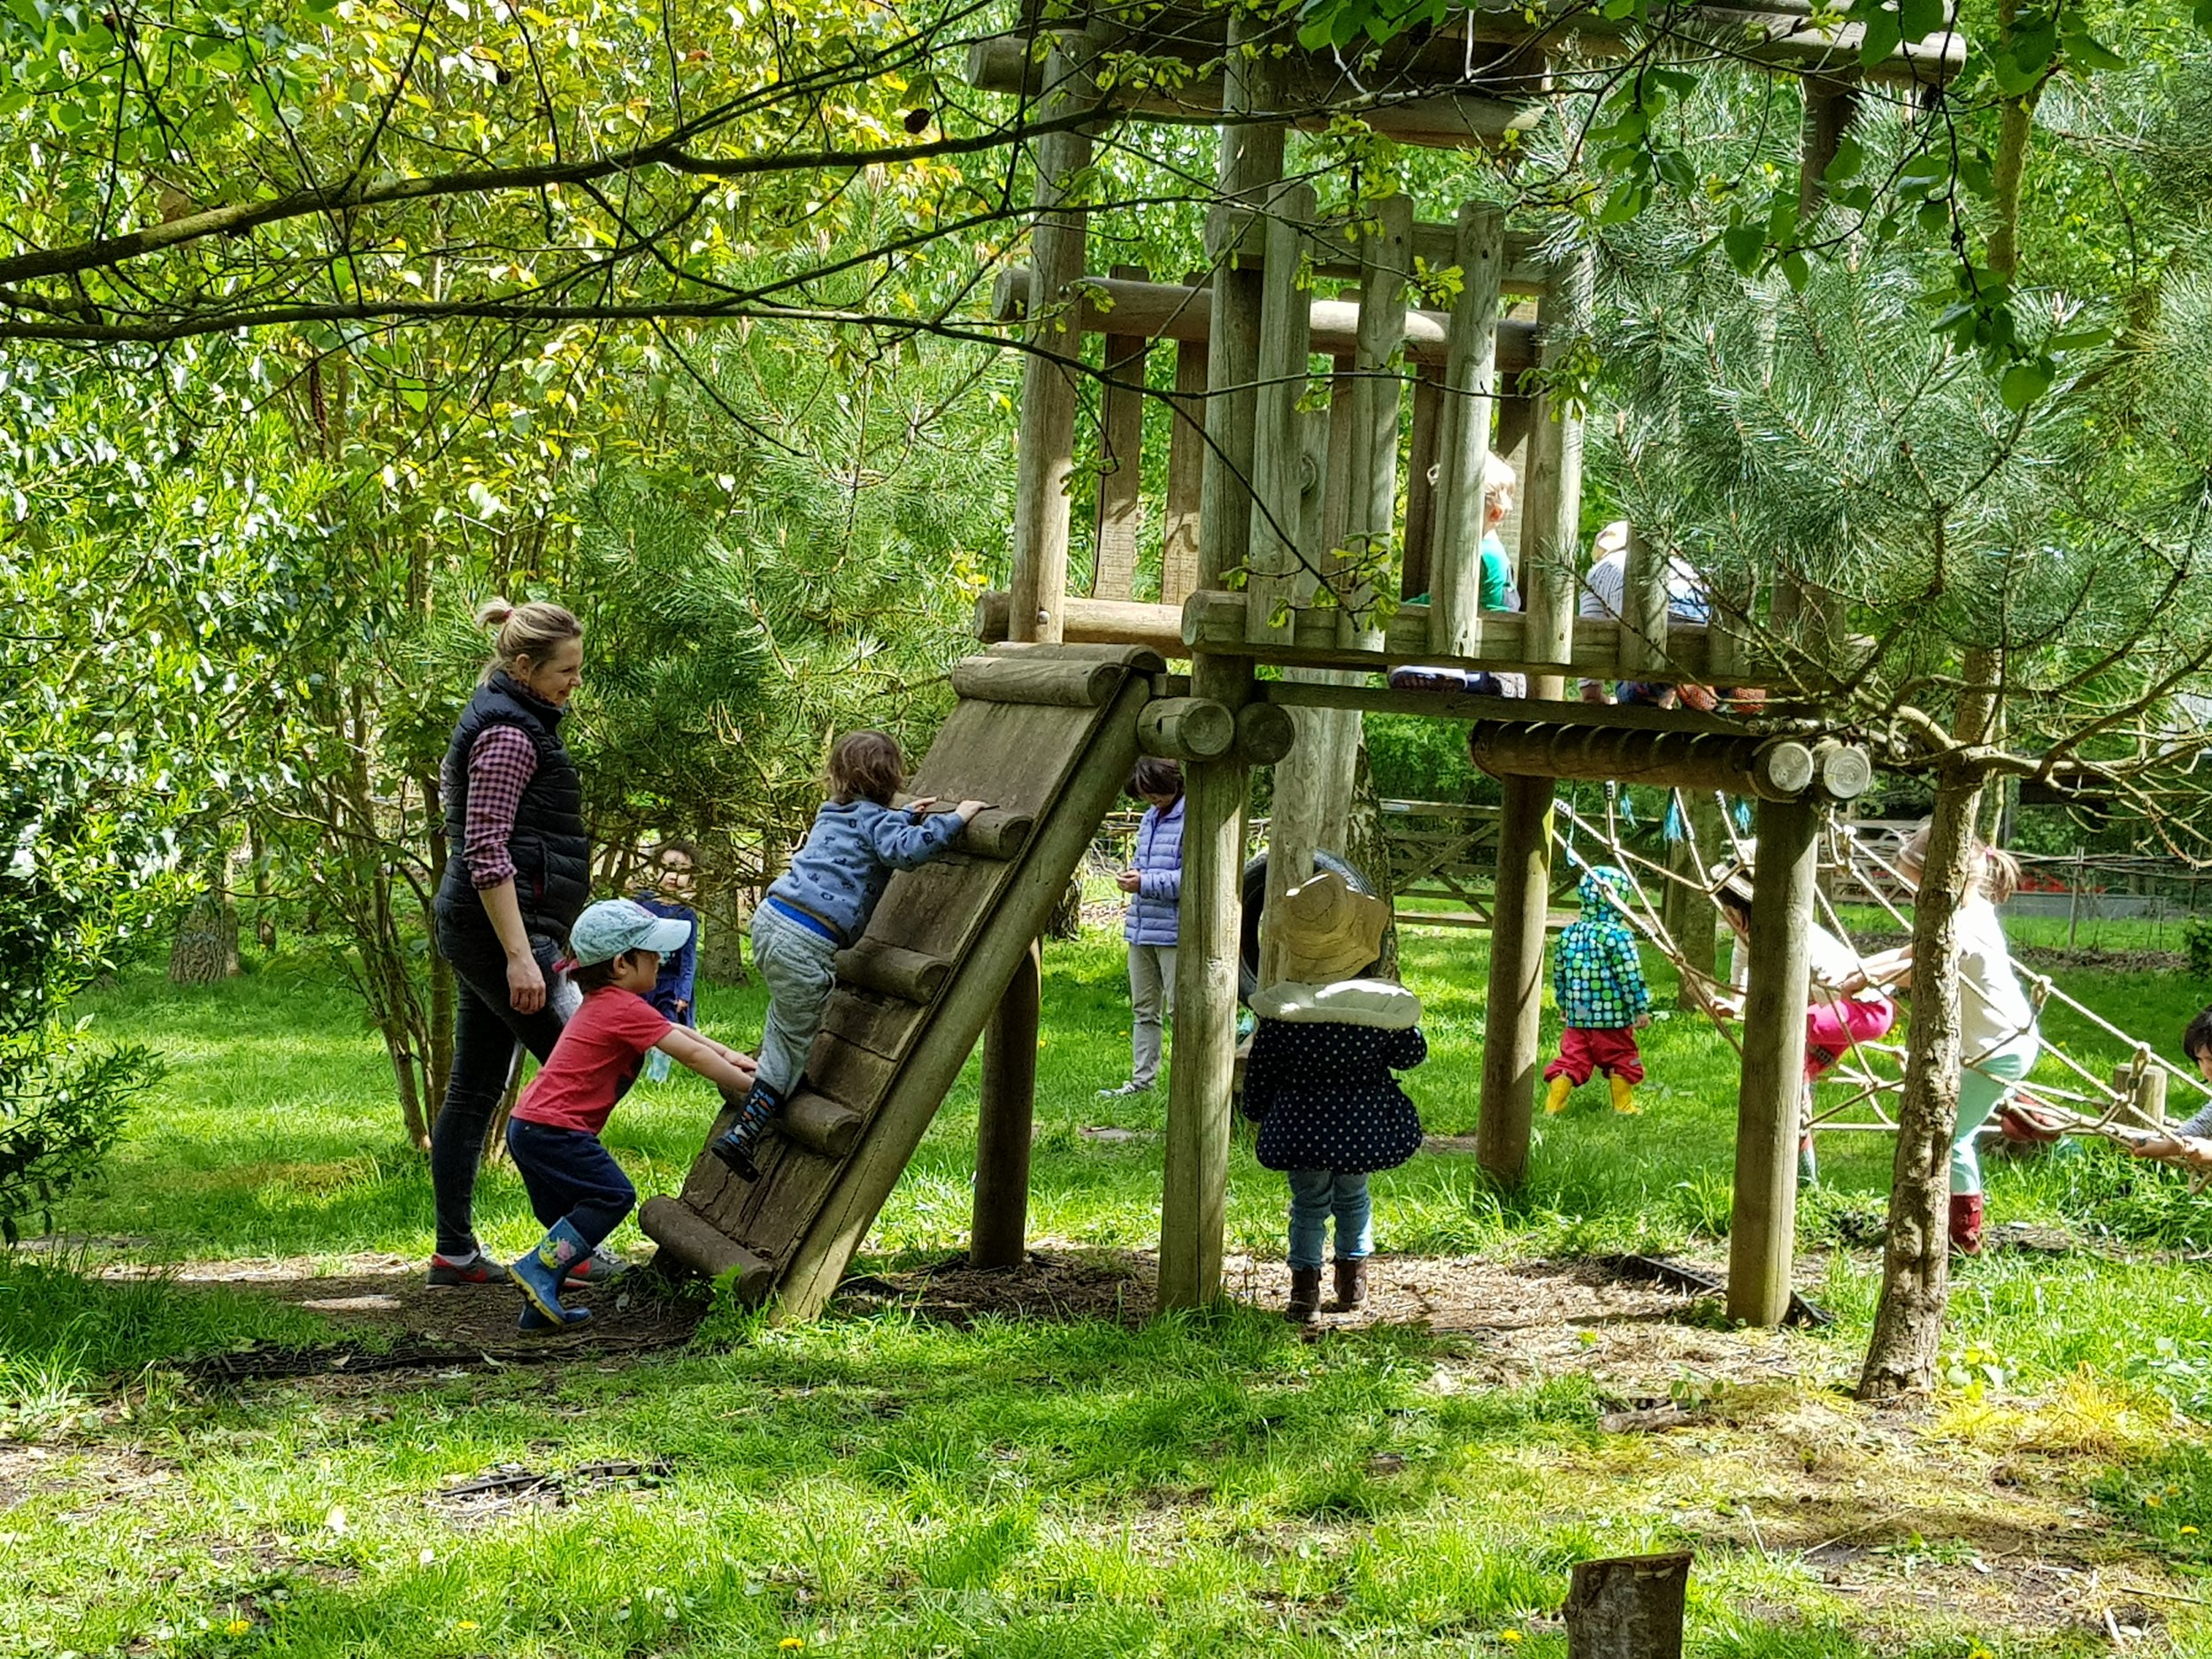 Nursery children have access to playgrounds near our woods.